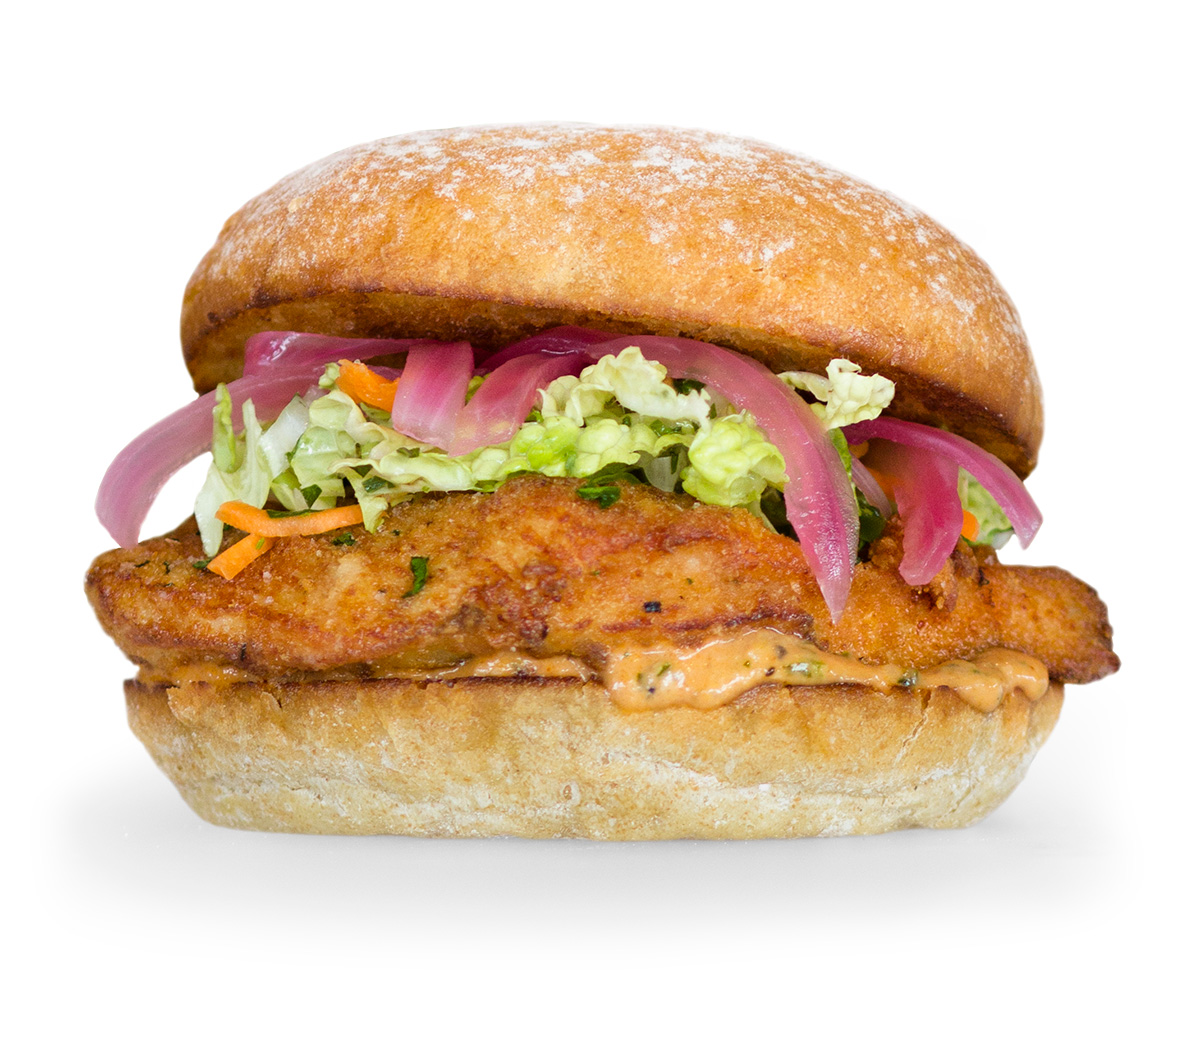 Crispy Chicken Sandwich, Available for a Limited Time at all Burger Lounge locations